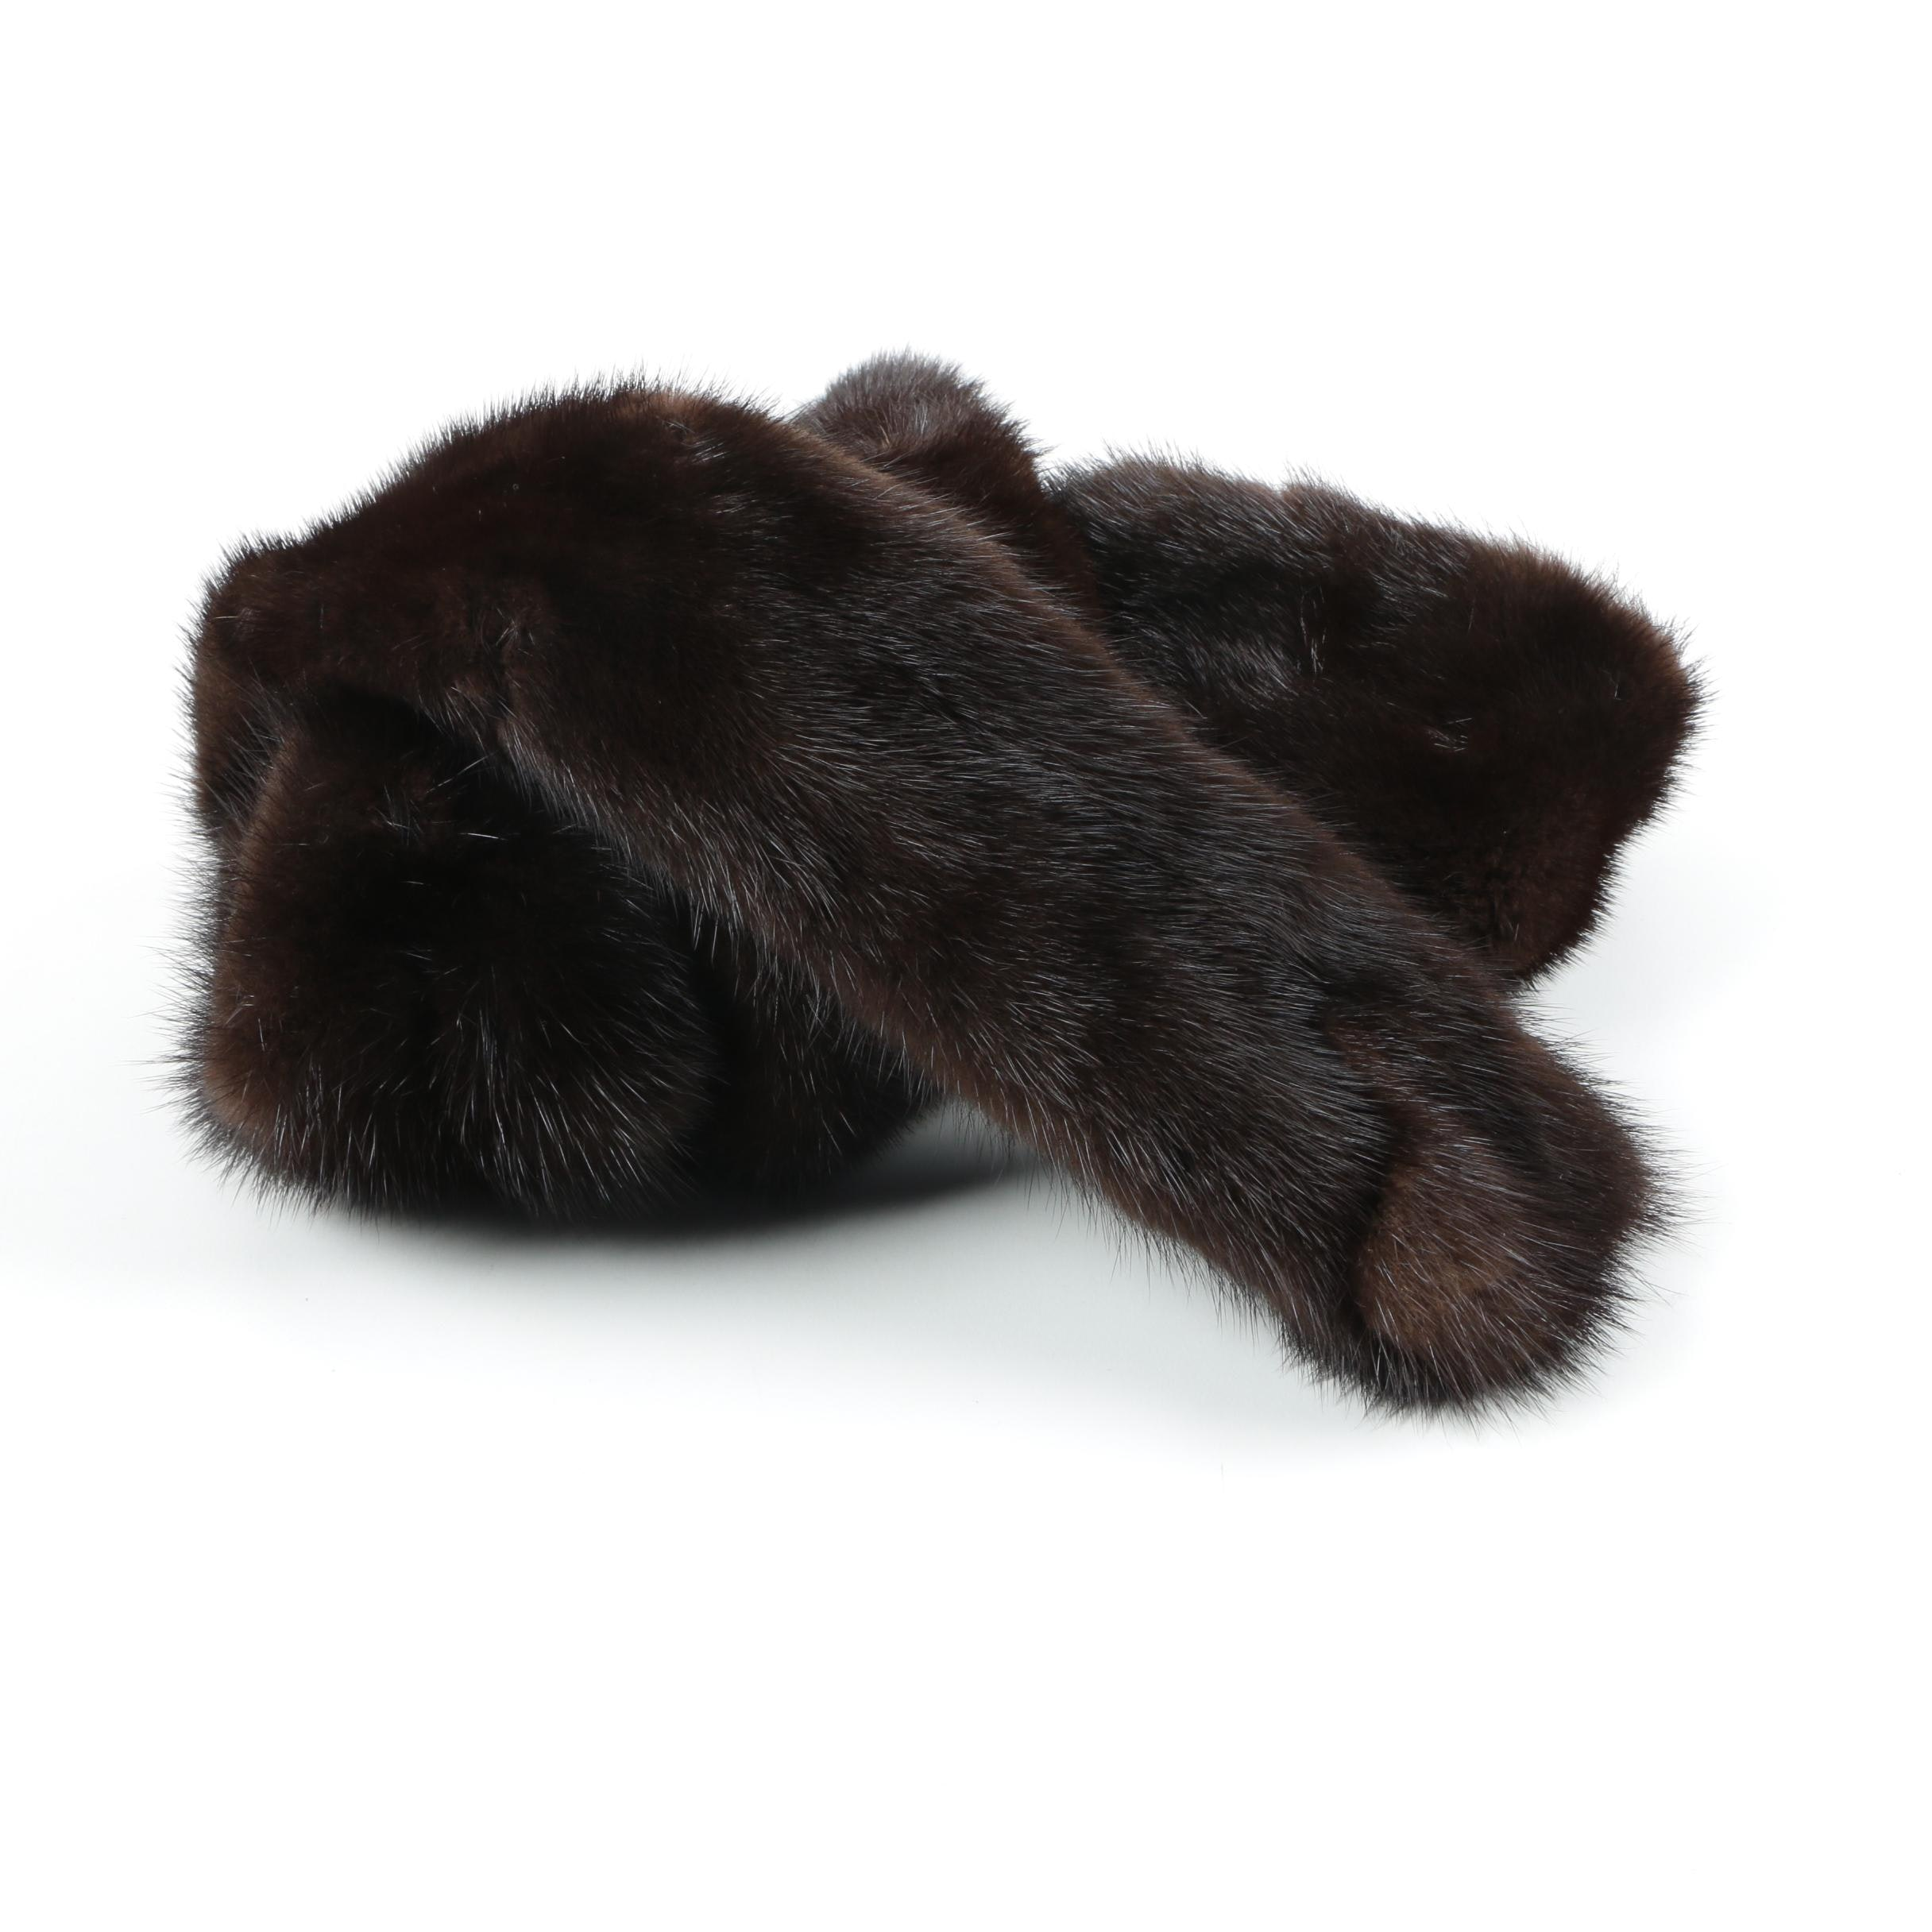 Vintage Chocolate Mink Fur Scarf